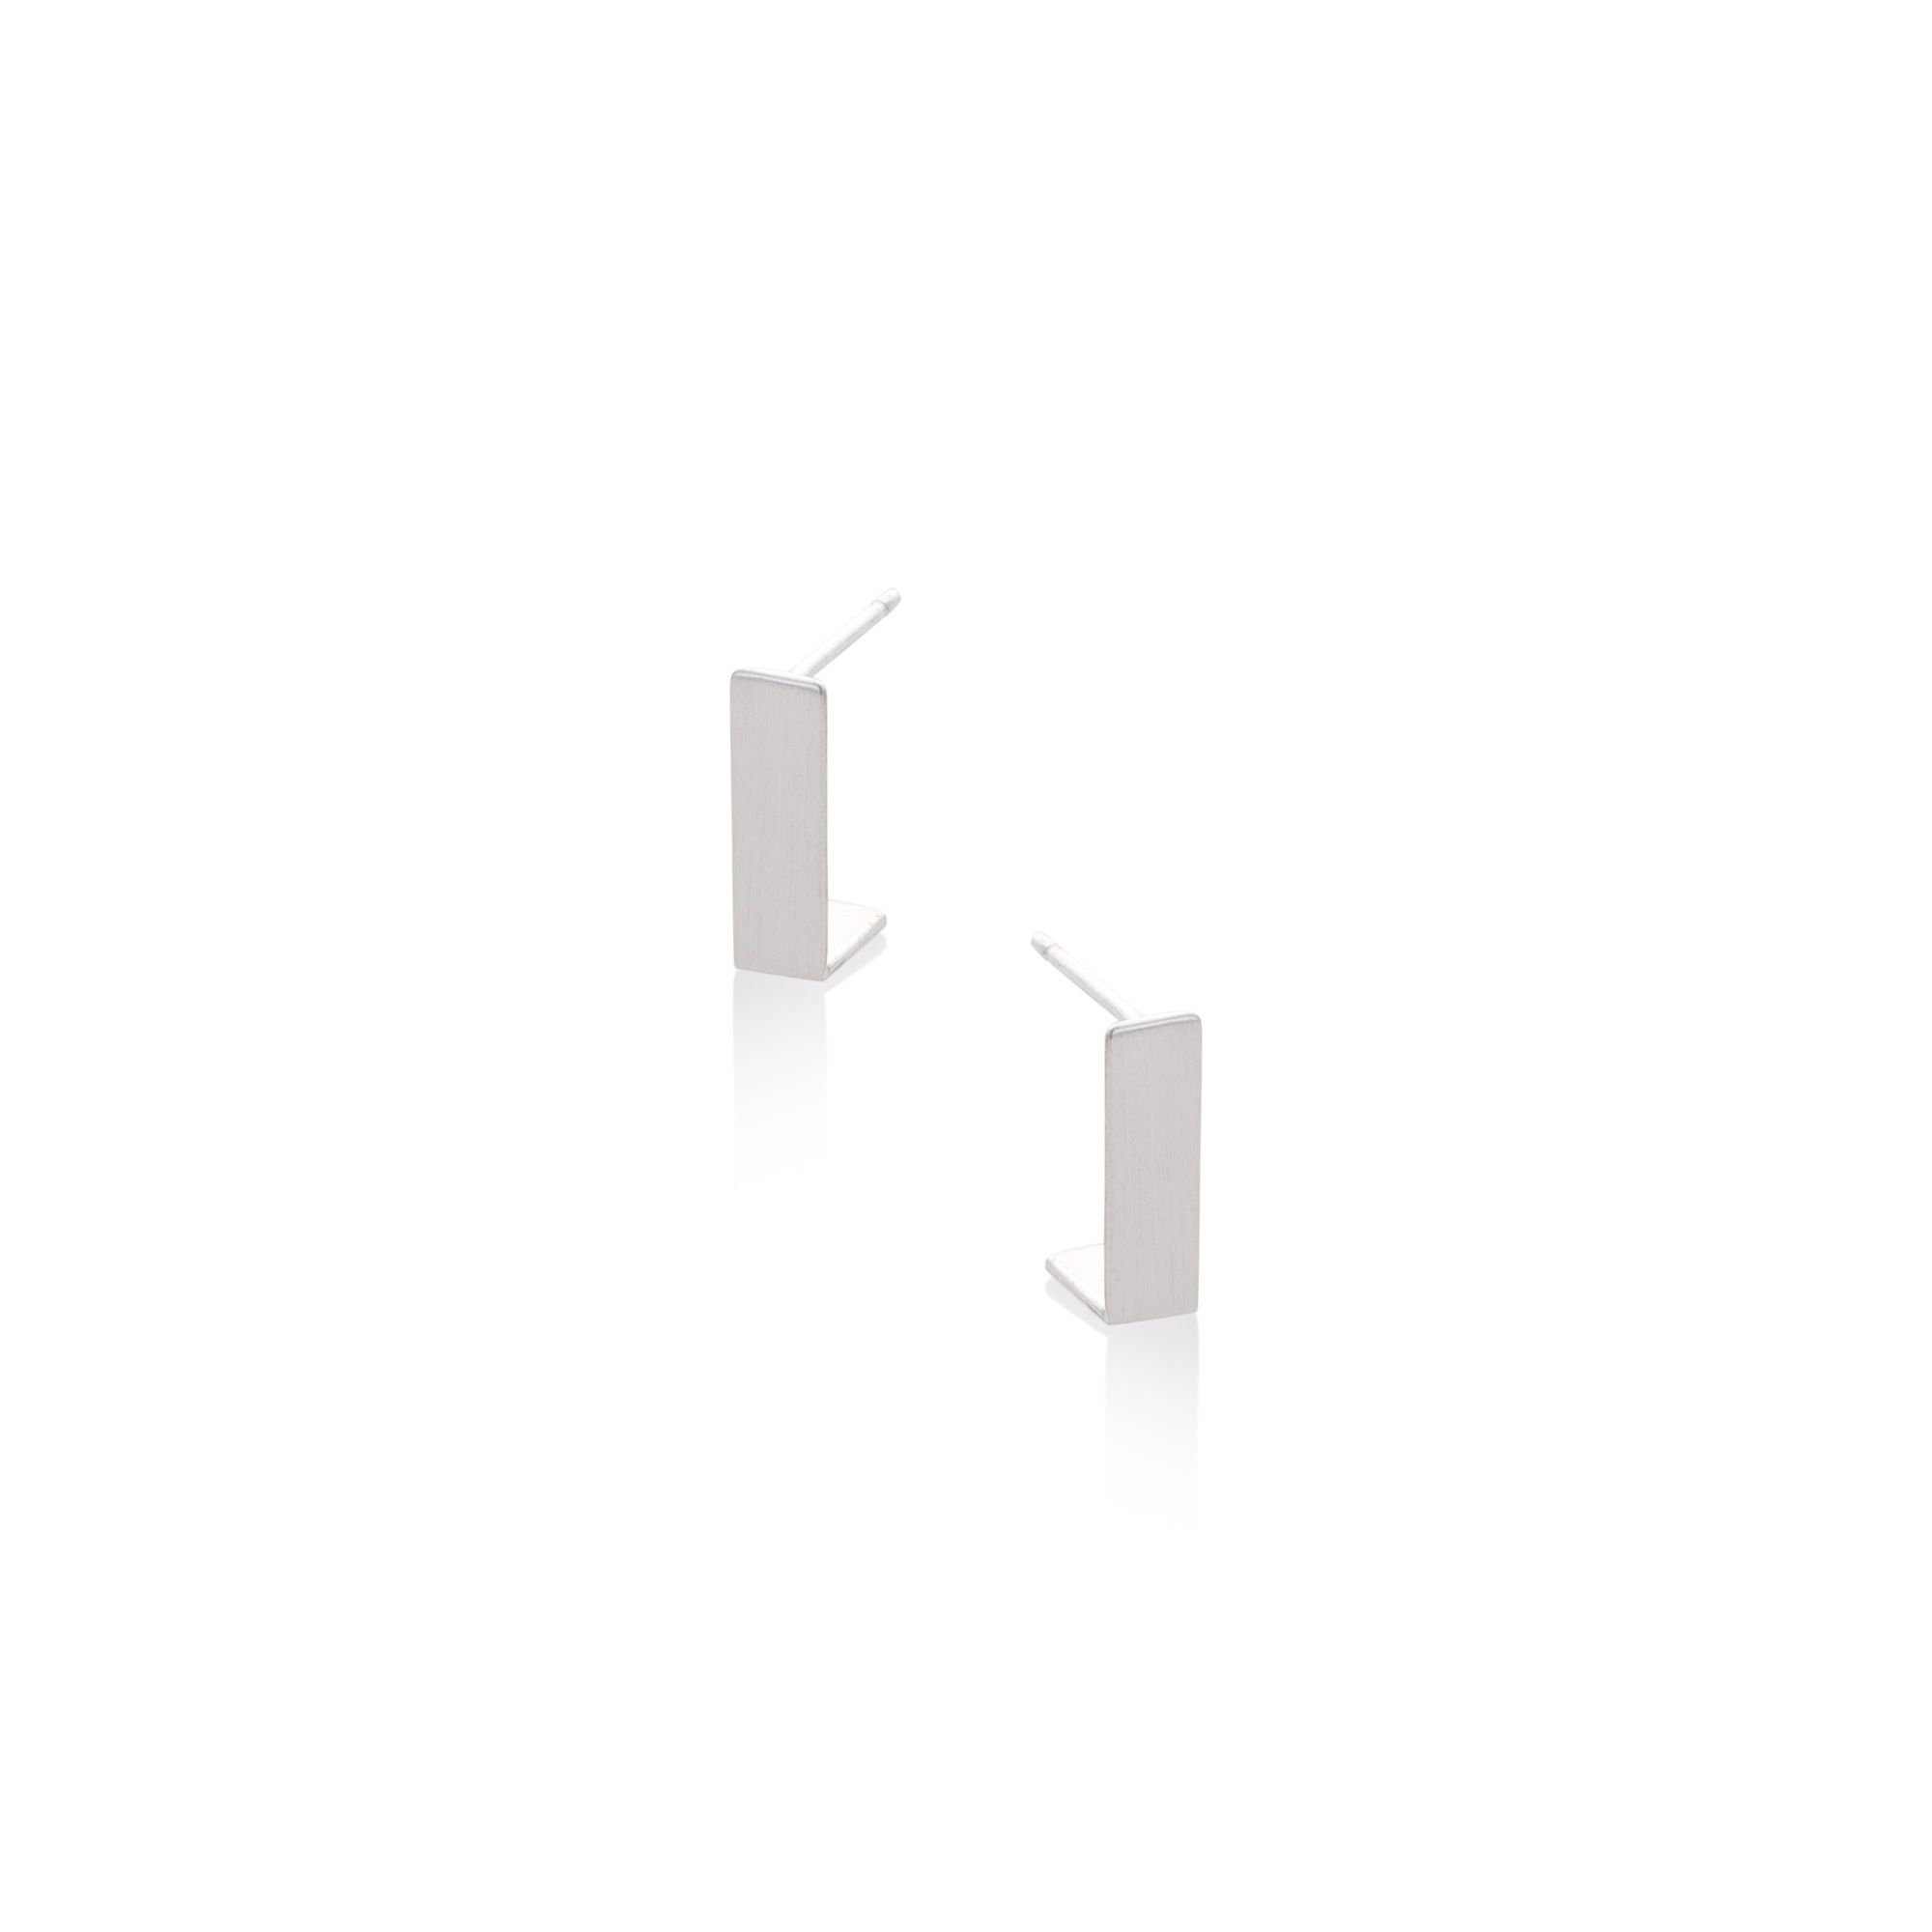 Buy the Angular Hook Silver Stud Earrings at Oliver Bonas. Enjoy free worldwide standard delivery for orders over £50.